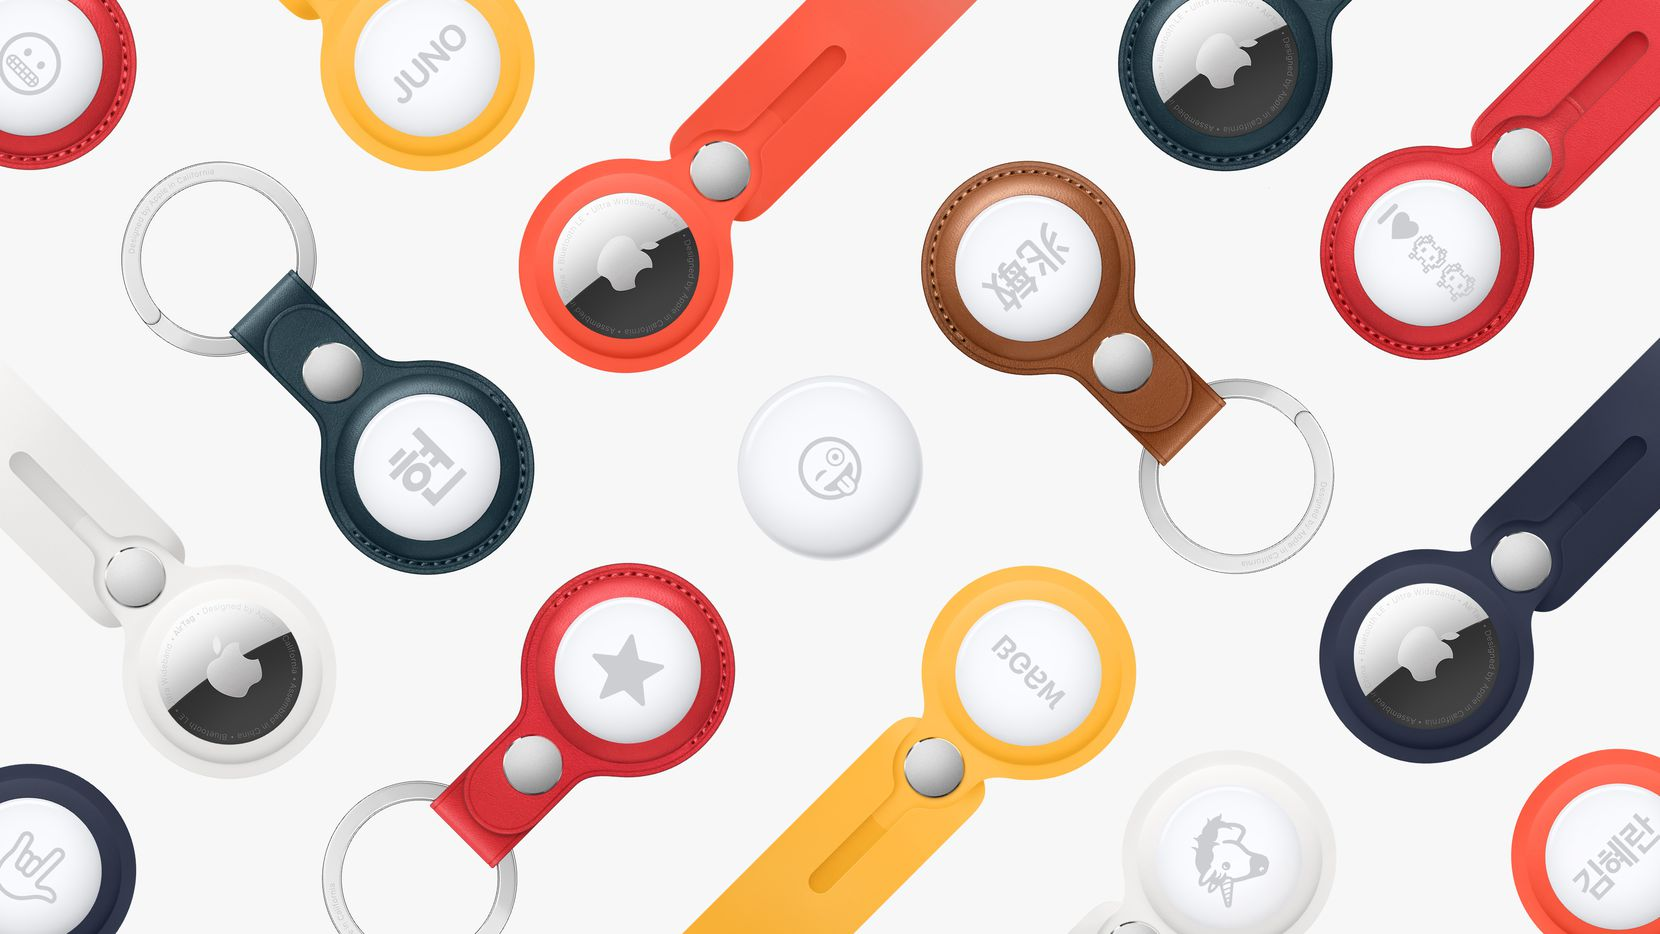 To attach the AirTag to your keys or bag, you'll need some kind of fob. Apple sells a few.